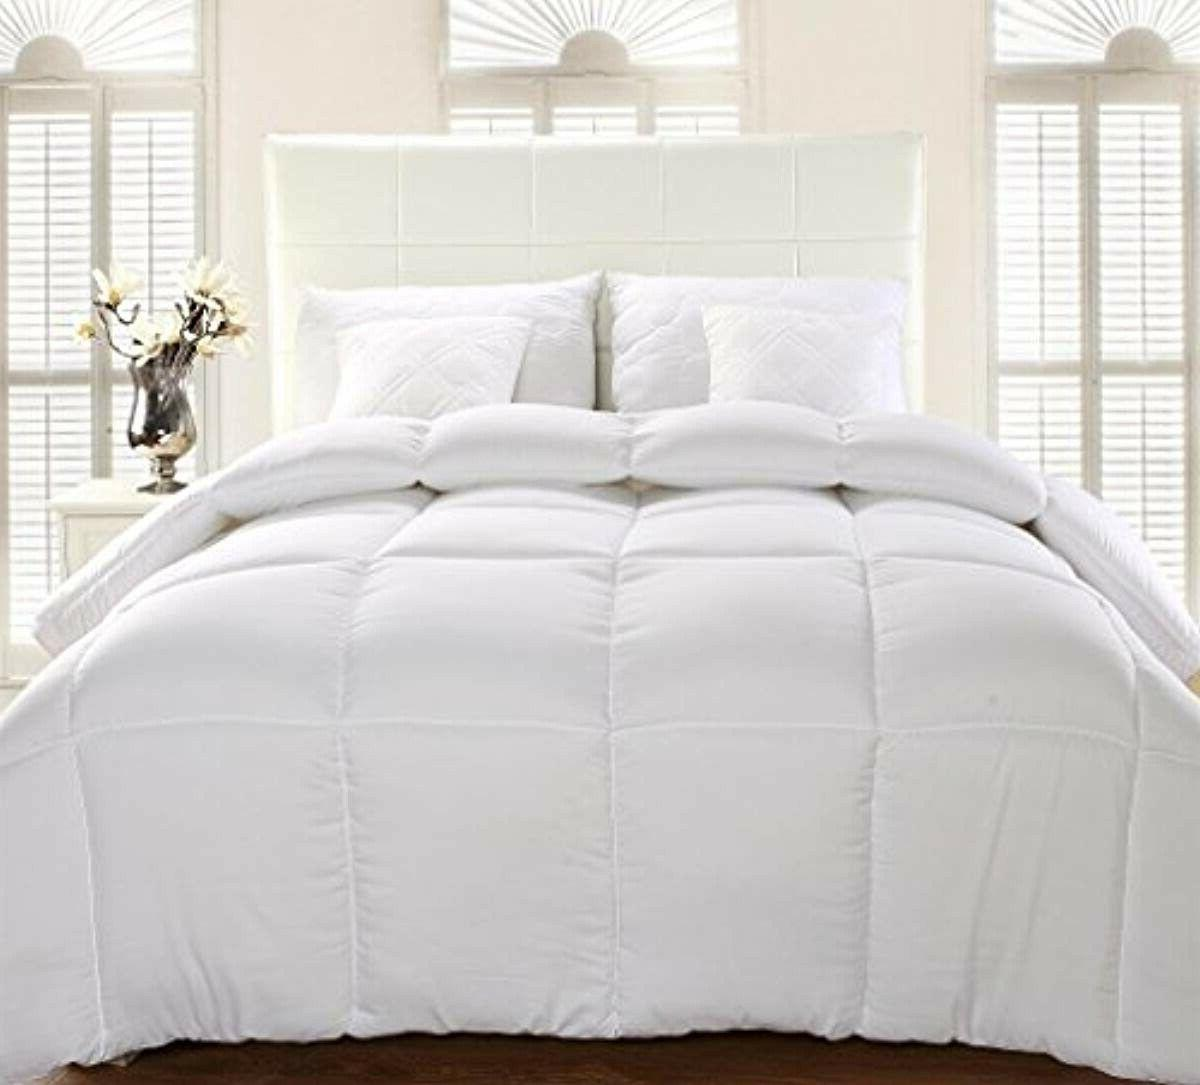 Utopia Comforter Insert Quilted with Tabs Hyp